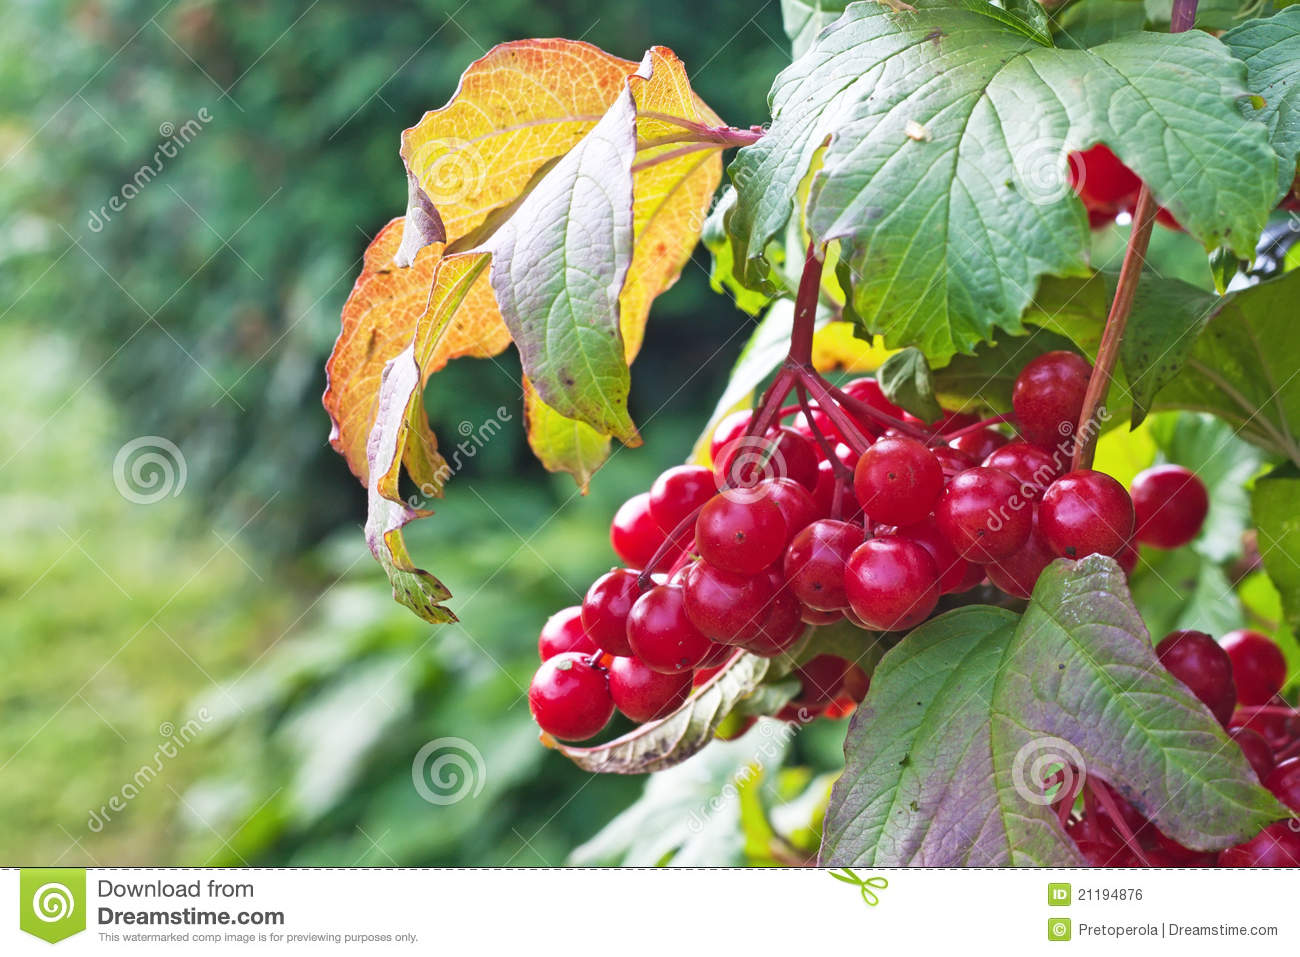 Berries on a bush viburnum